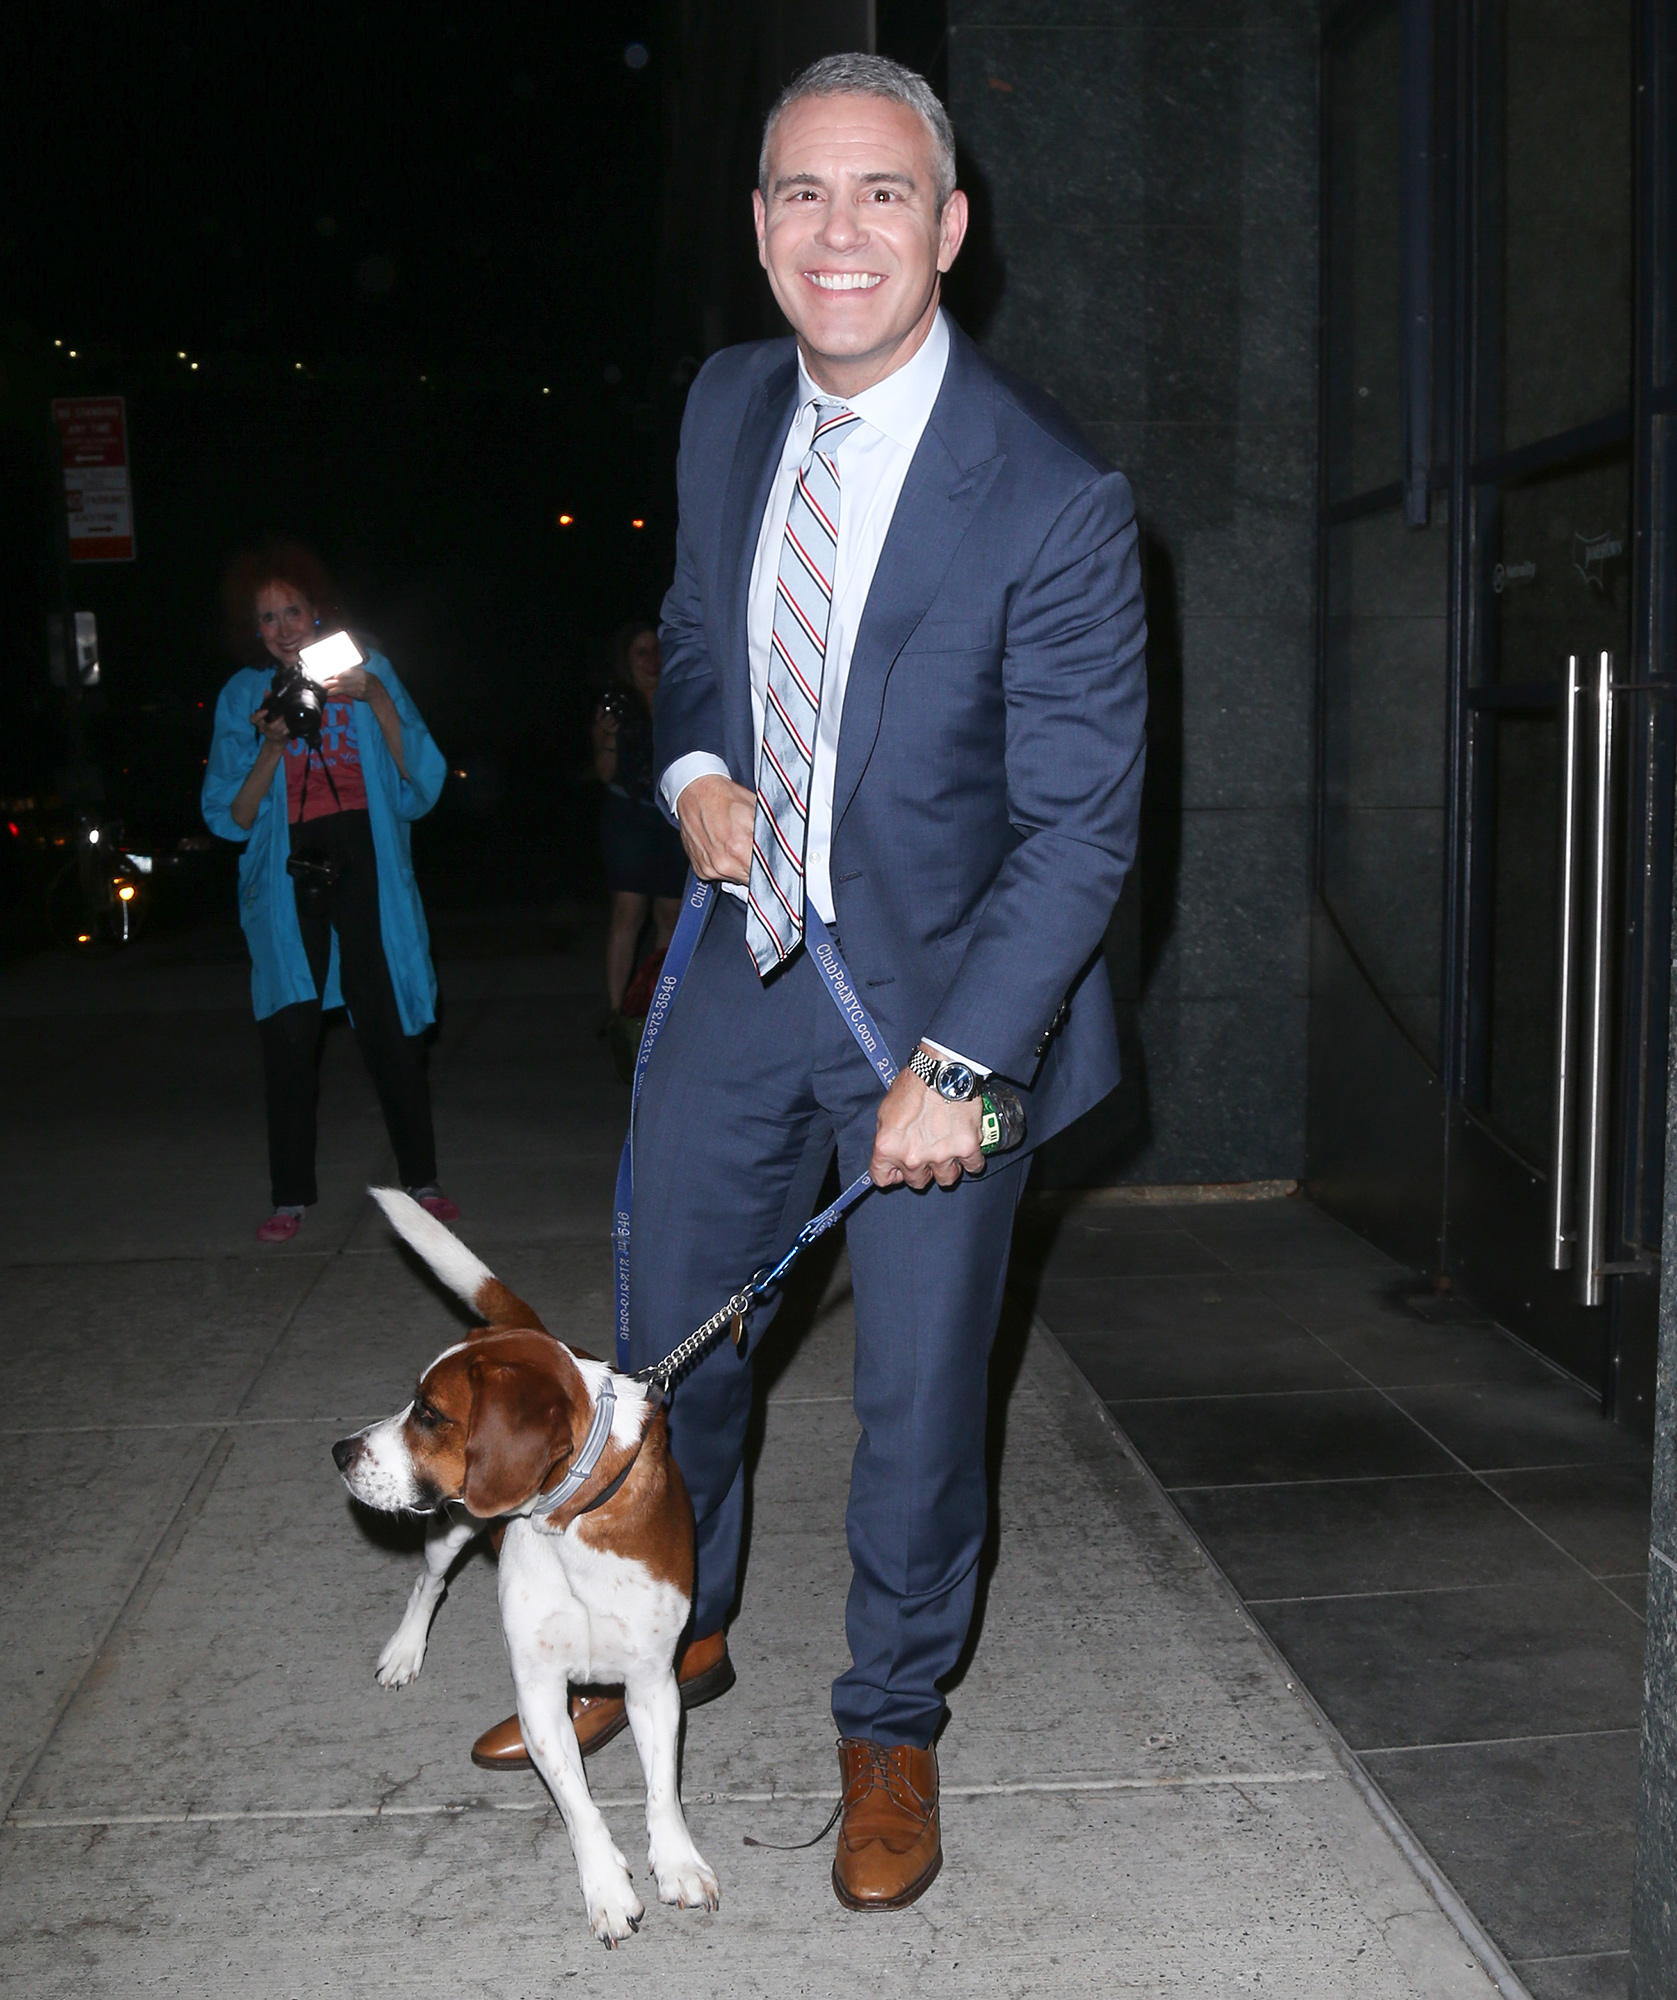 Andy Cohen and his dog out and about in New York City